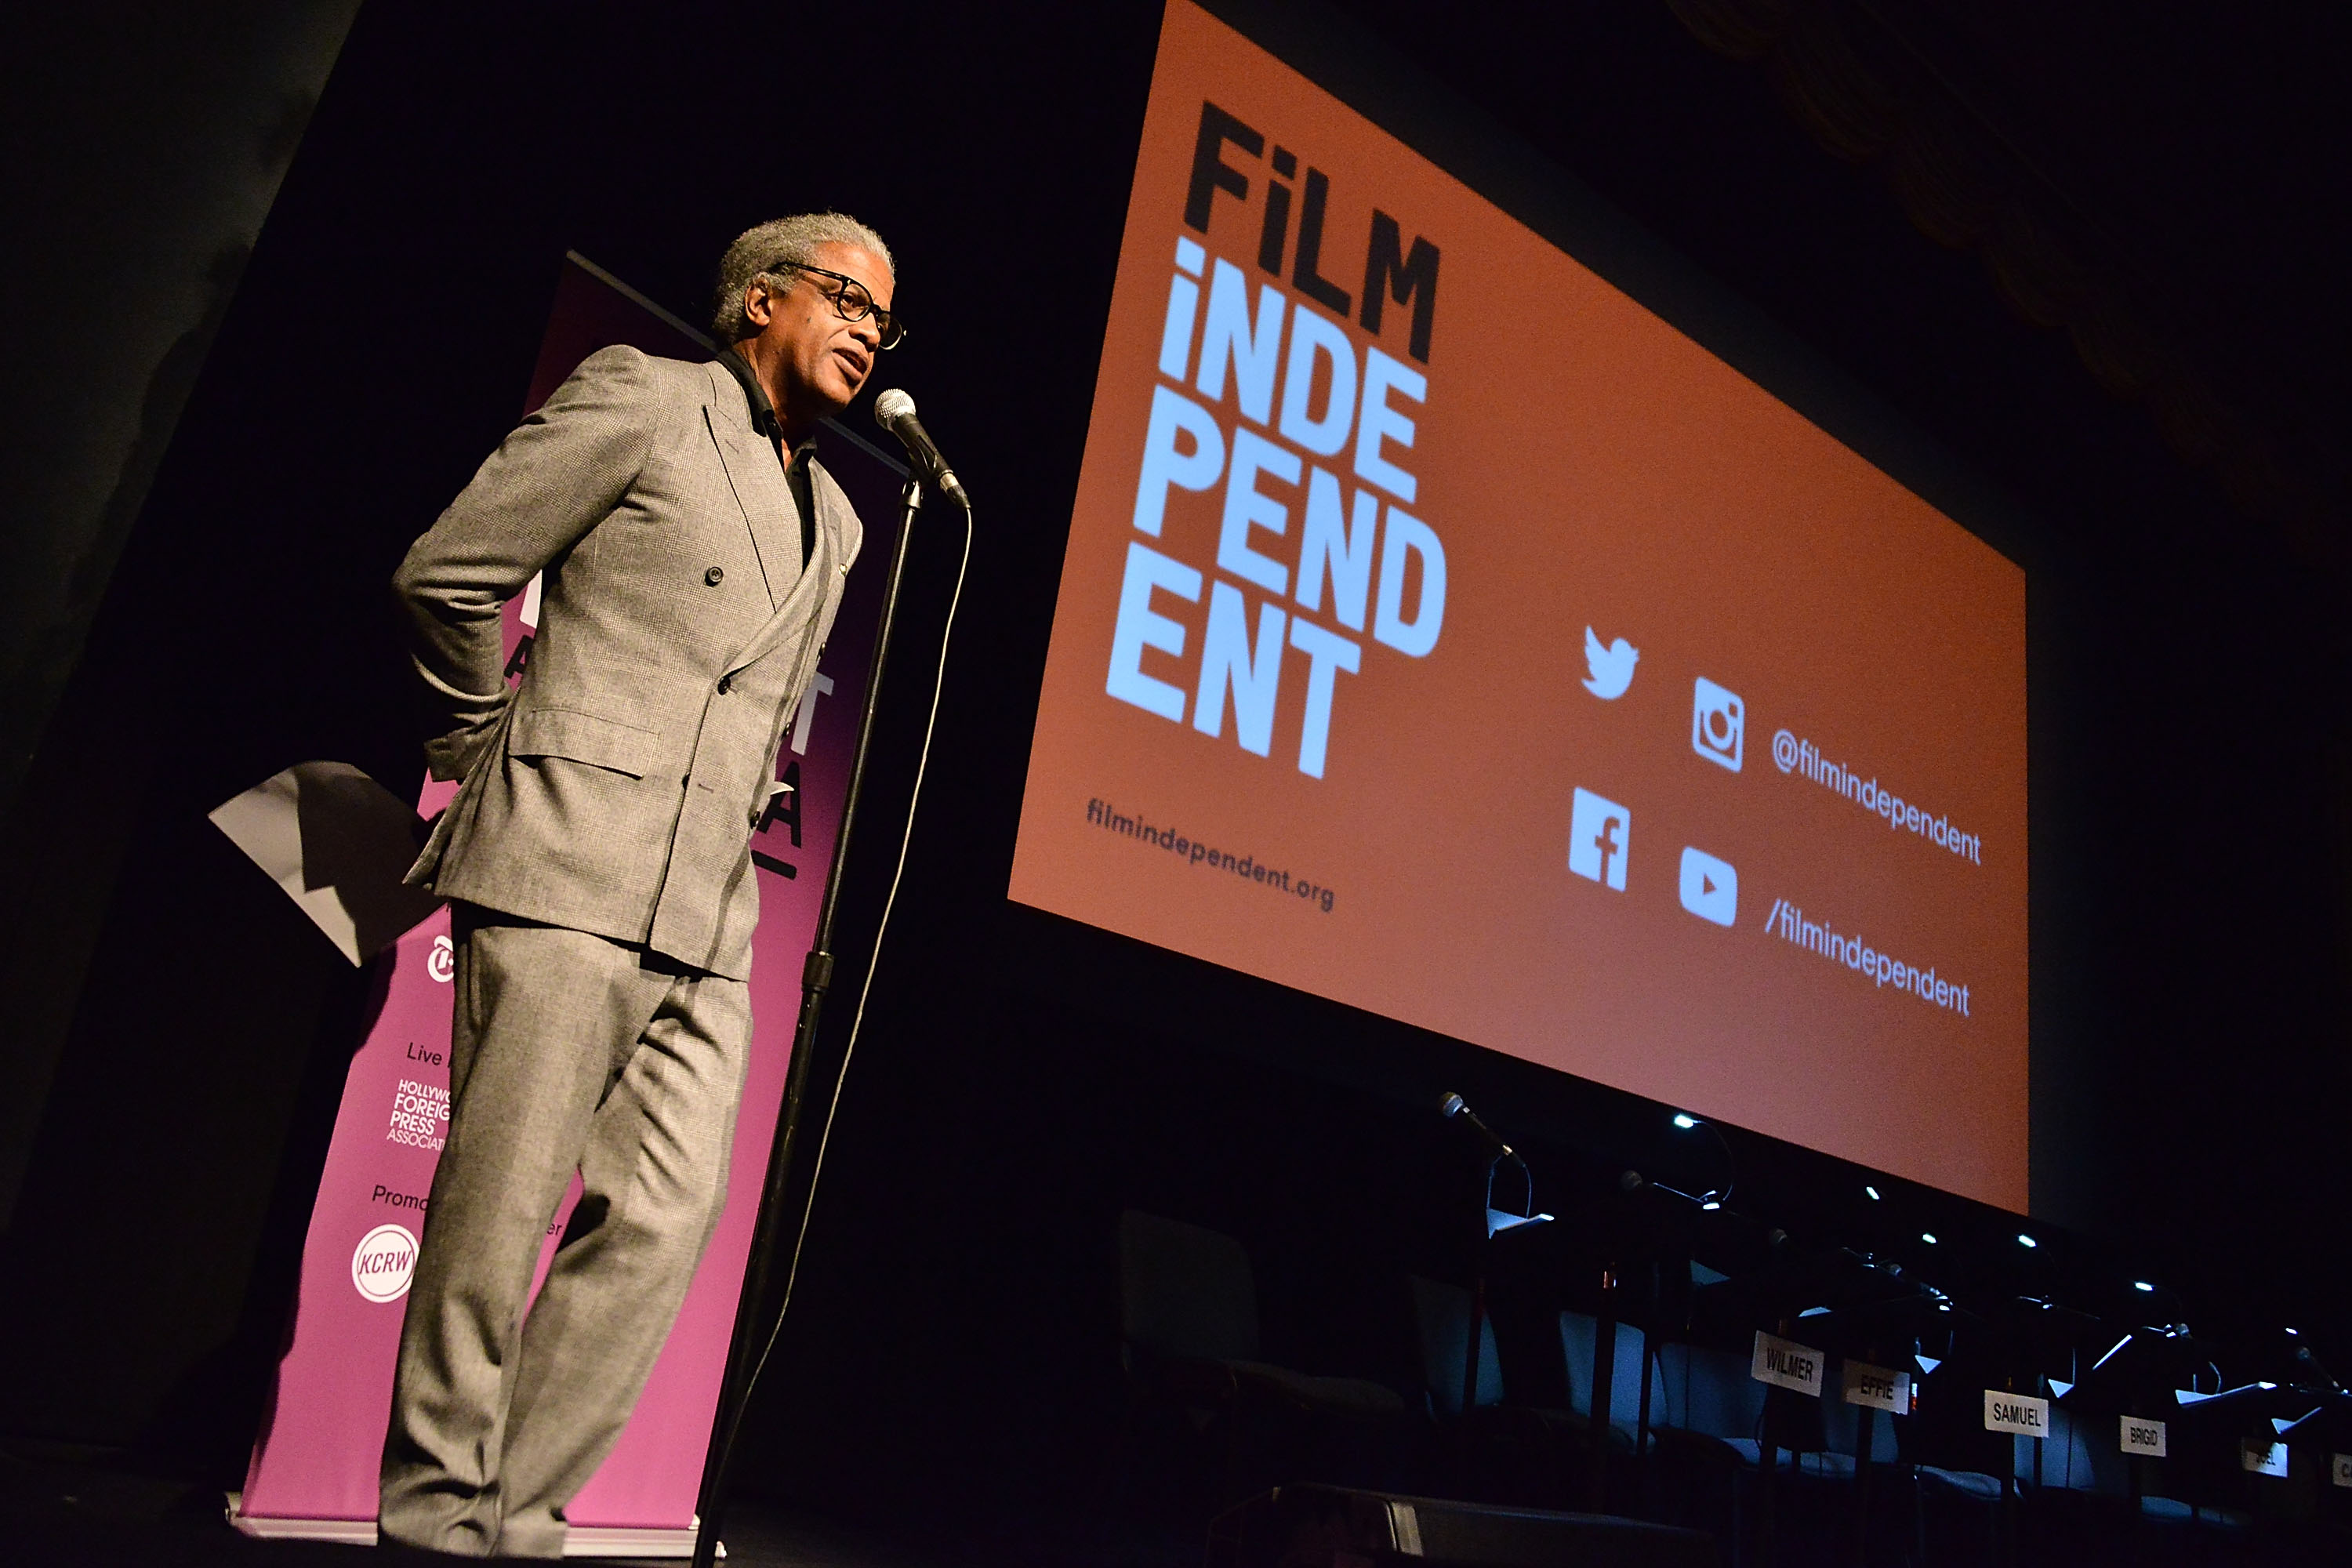 LOS ANGELES, CA - FEBRUARY 18: Elvis Mitchell attends the Film Independent at LACMA Live Read with guest director Laurence Fishburne at Bing Theatre At LACMA on February 18, 2016 in Los Angeles, California. (Photo by Araya Diaz/WireImage)